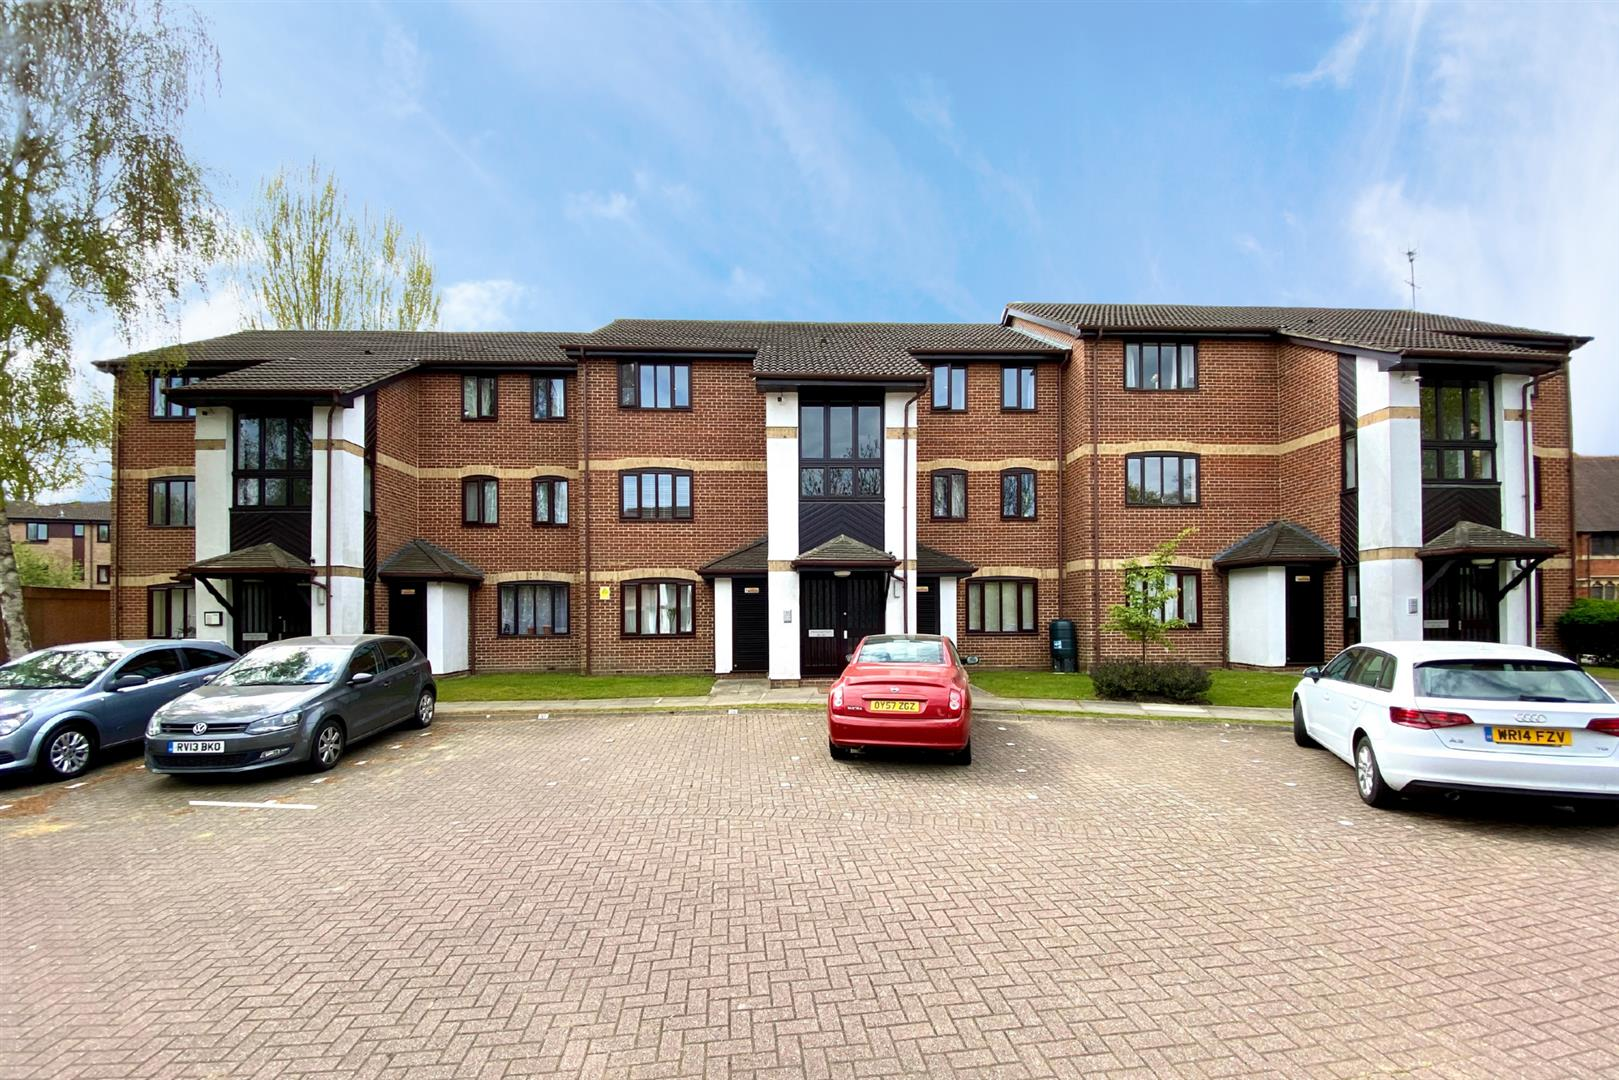 1 bed flat for sale, RG1